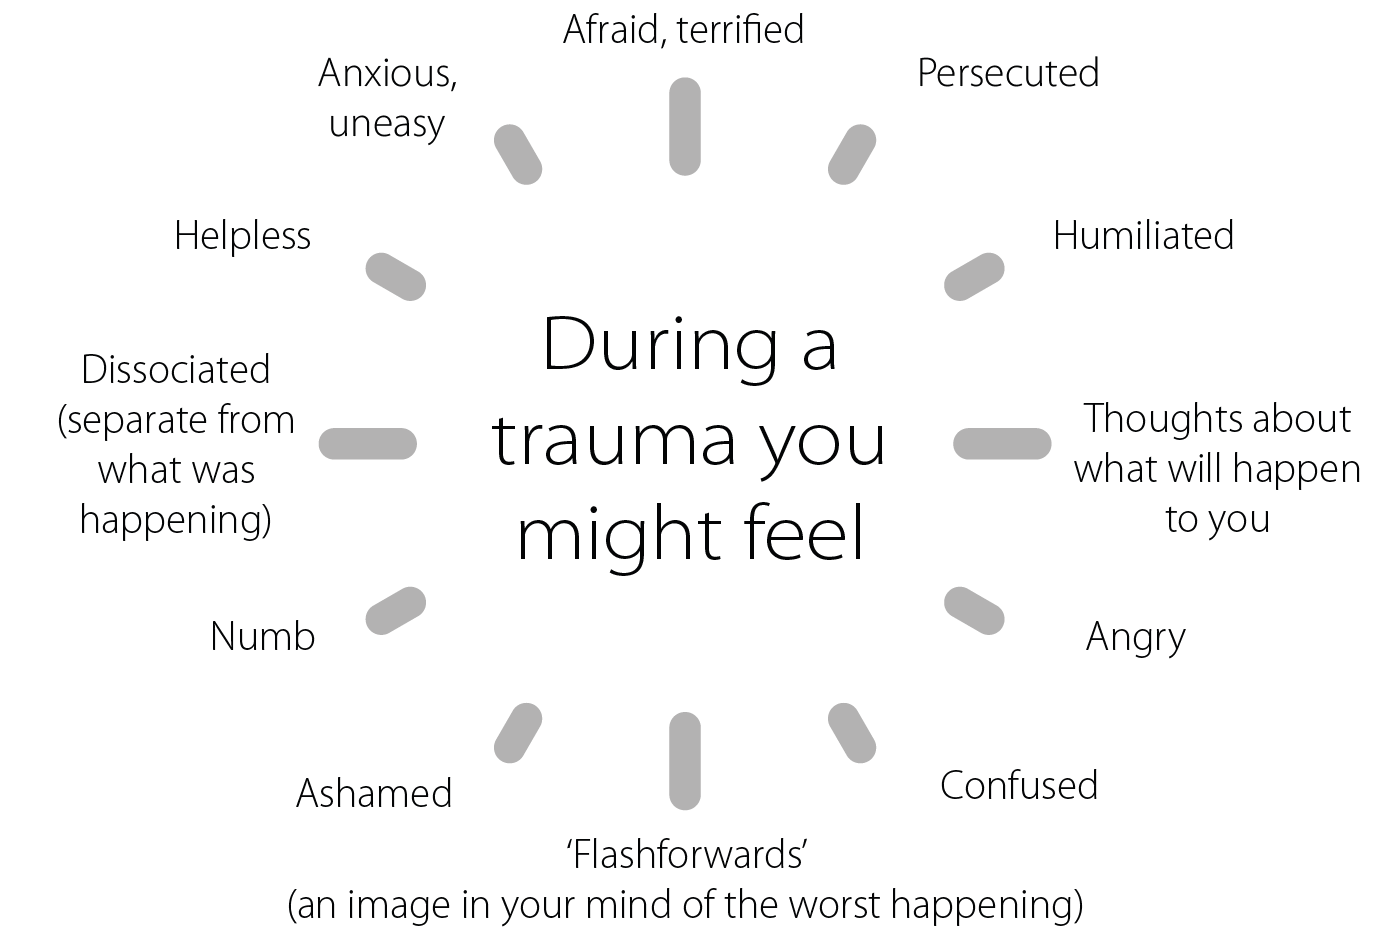 Symptoms you might feel during a trauma